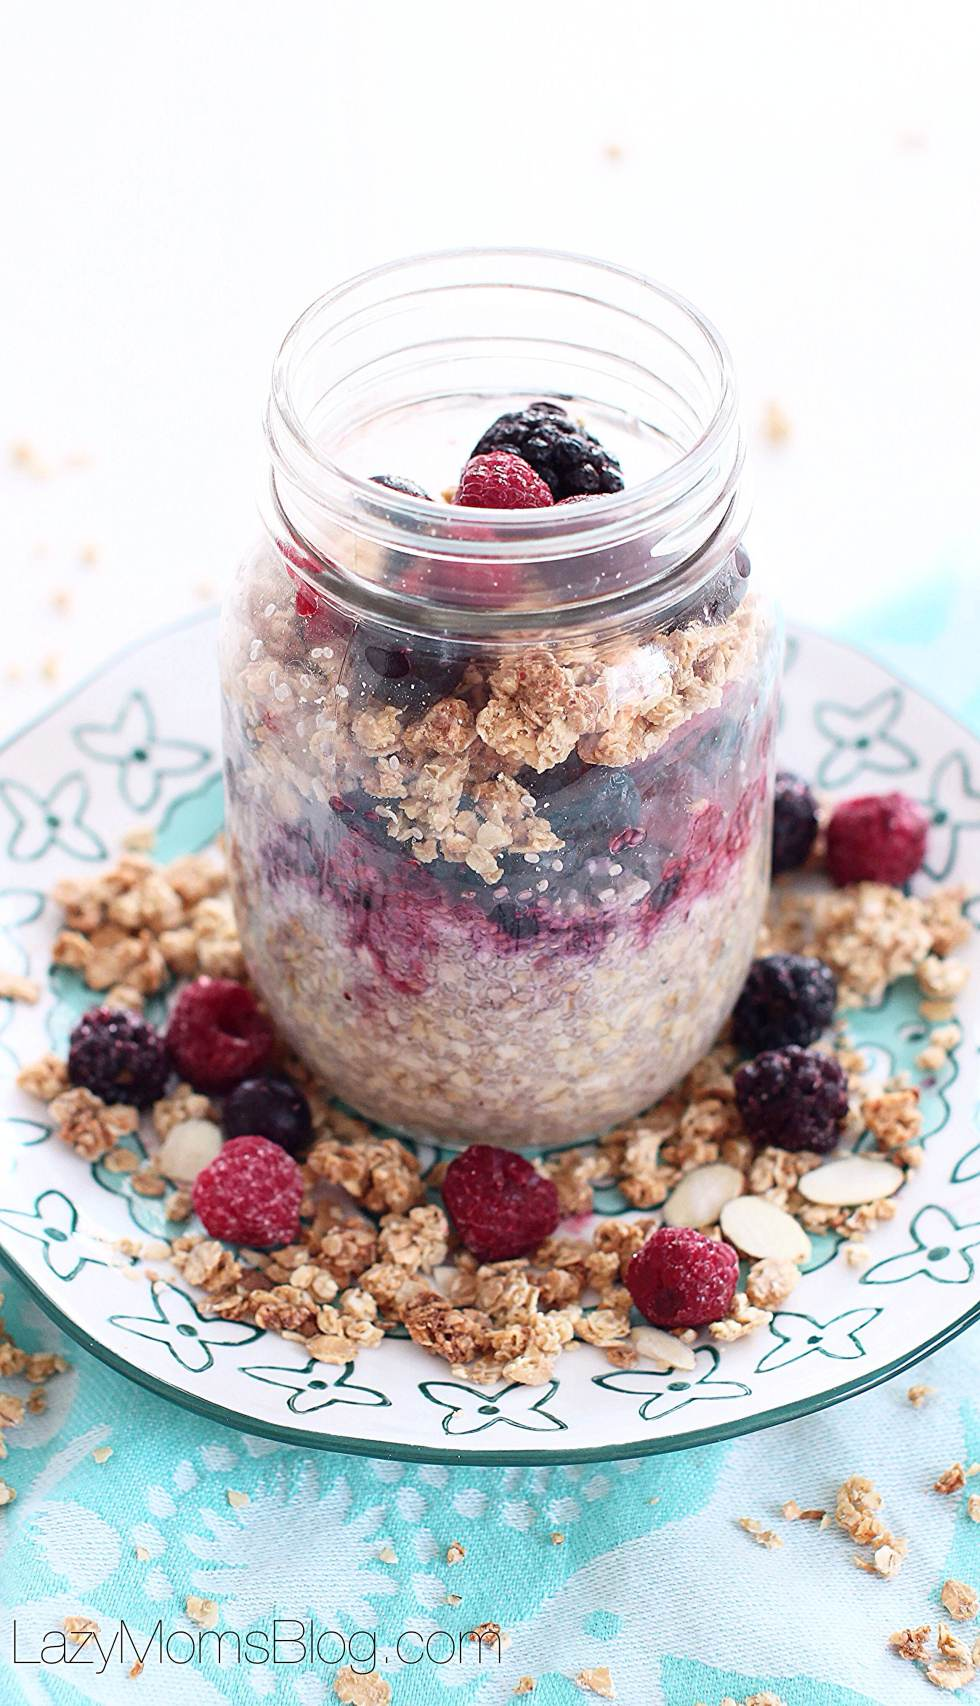 Overnight maple chia oats